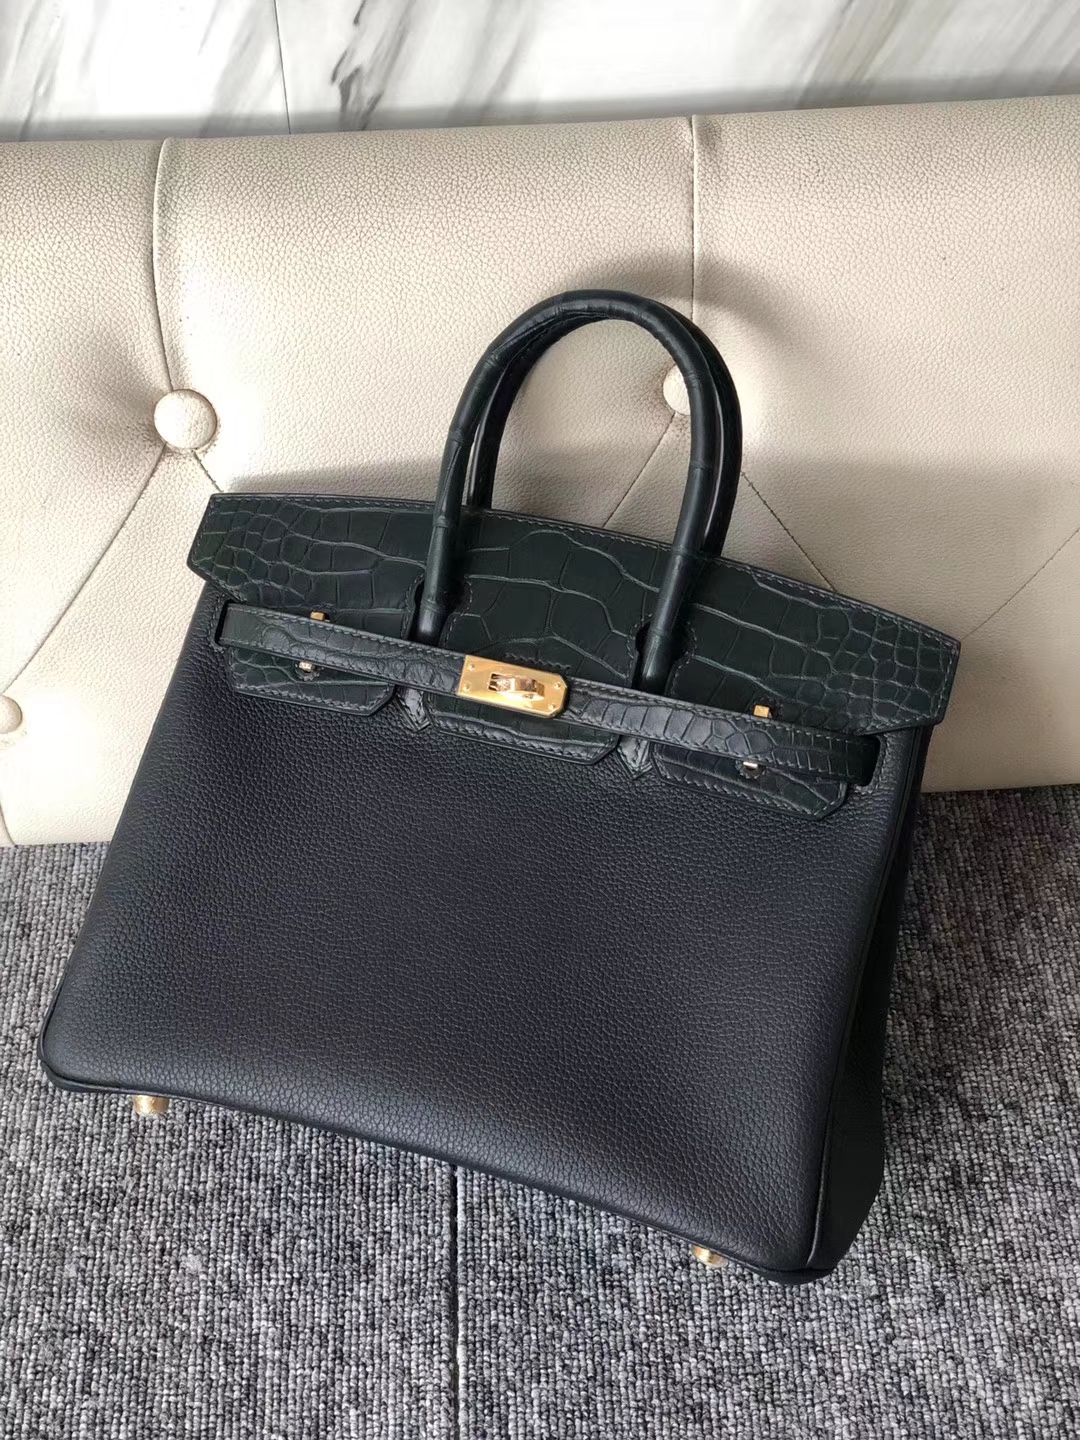 Customize Hermes 6O Vert Cypress Matt Crocodile/Togo Touch Birkin Bag25CM Gold Hardware